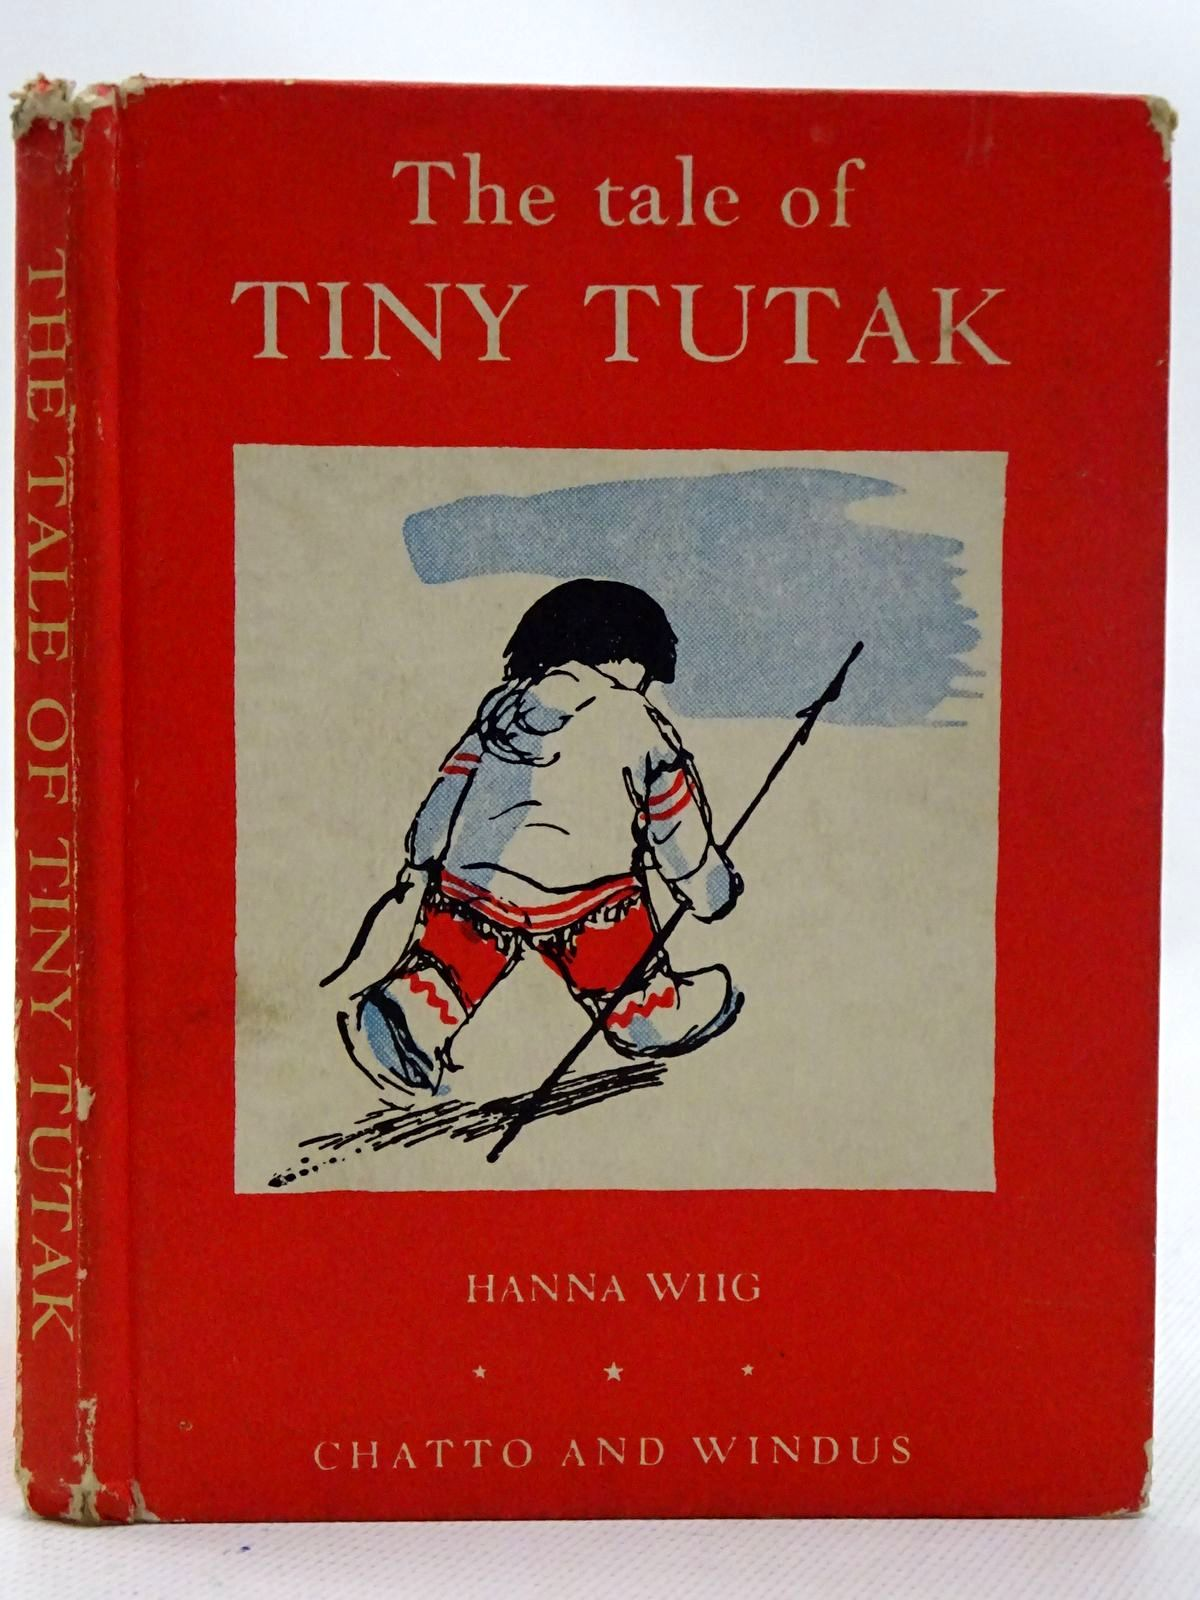 Photo of THE TALE OF TINY TUTAK written by Wiig, Hanna illustrated by Skauge, Sven published by Chatto & Windus (STOCK CODE: 2126459)  for sale by Stella & Rose's Books